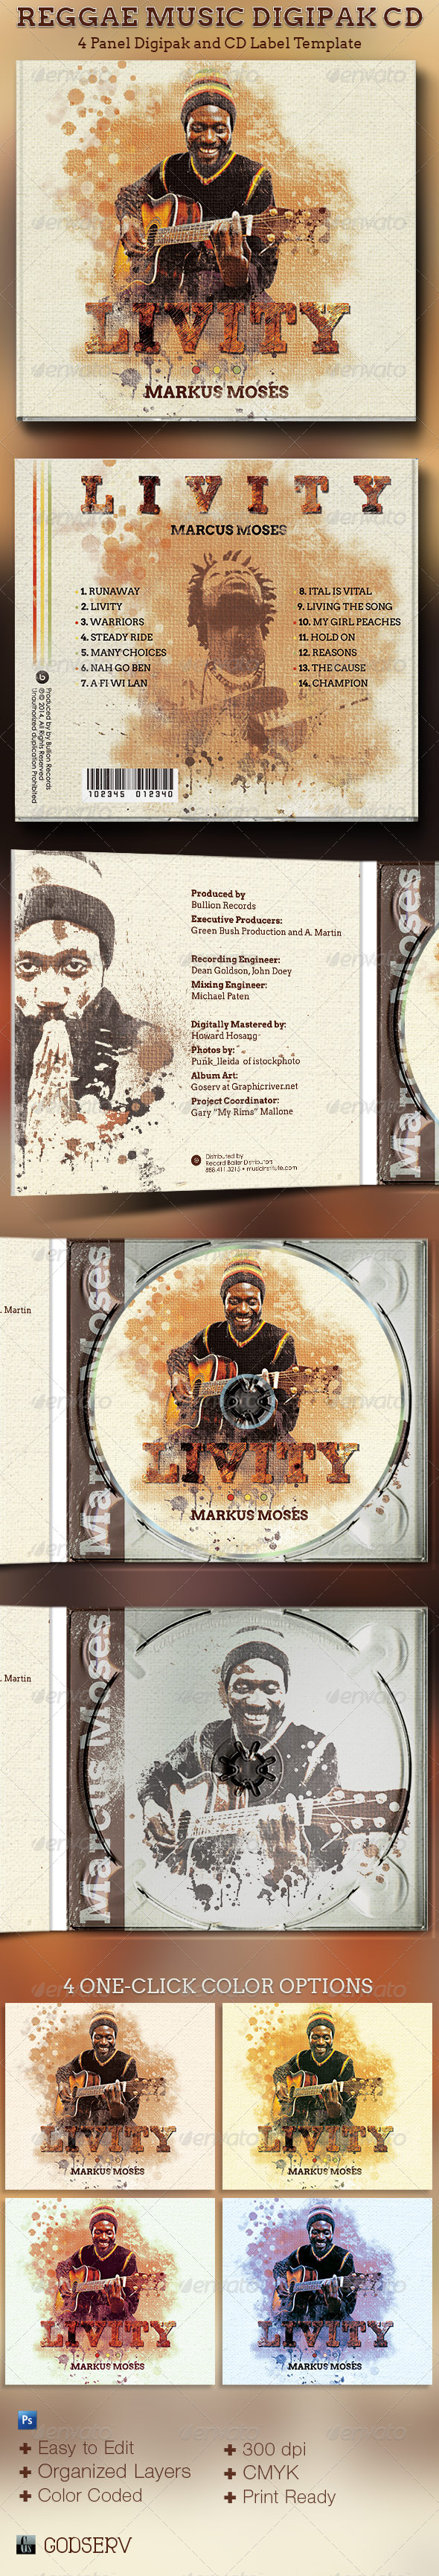 Reggae Music 4 Panel Digipak CD Artwork Template - CD & DVD artwork Print Templates